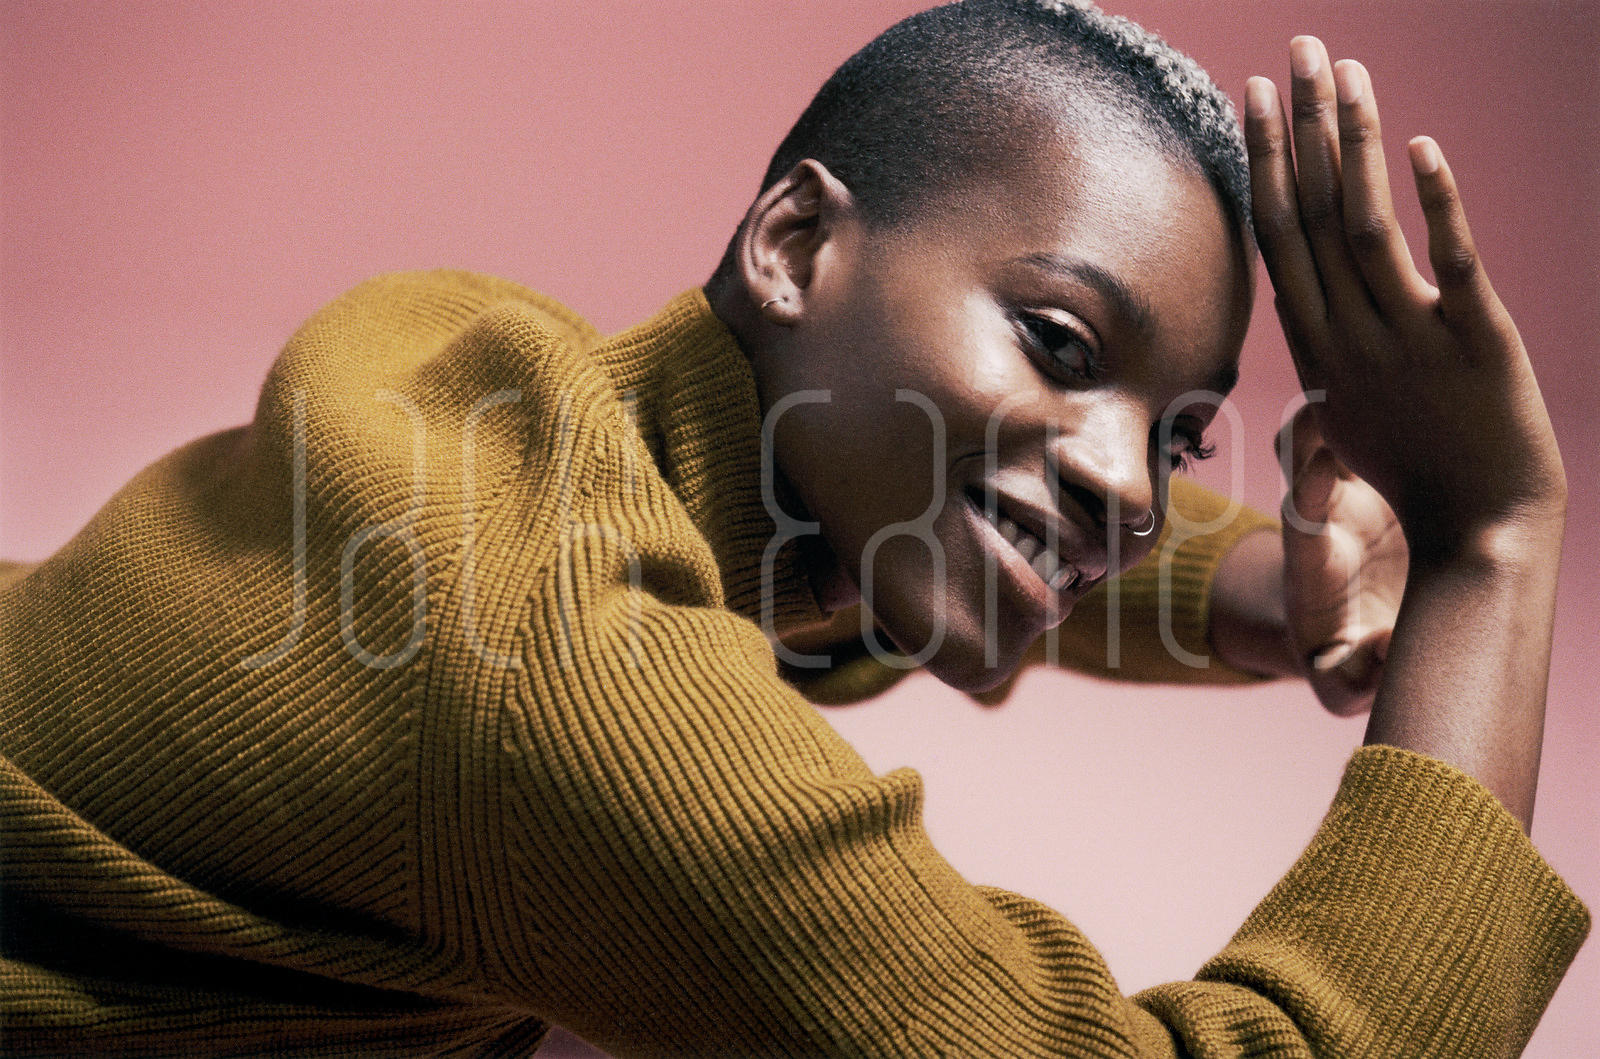 A Beautiful Young Black Woman With Shaved Hair Dancing Joyously In The Studio